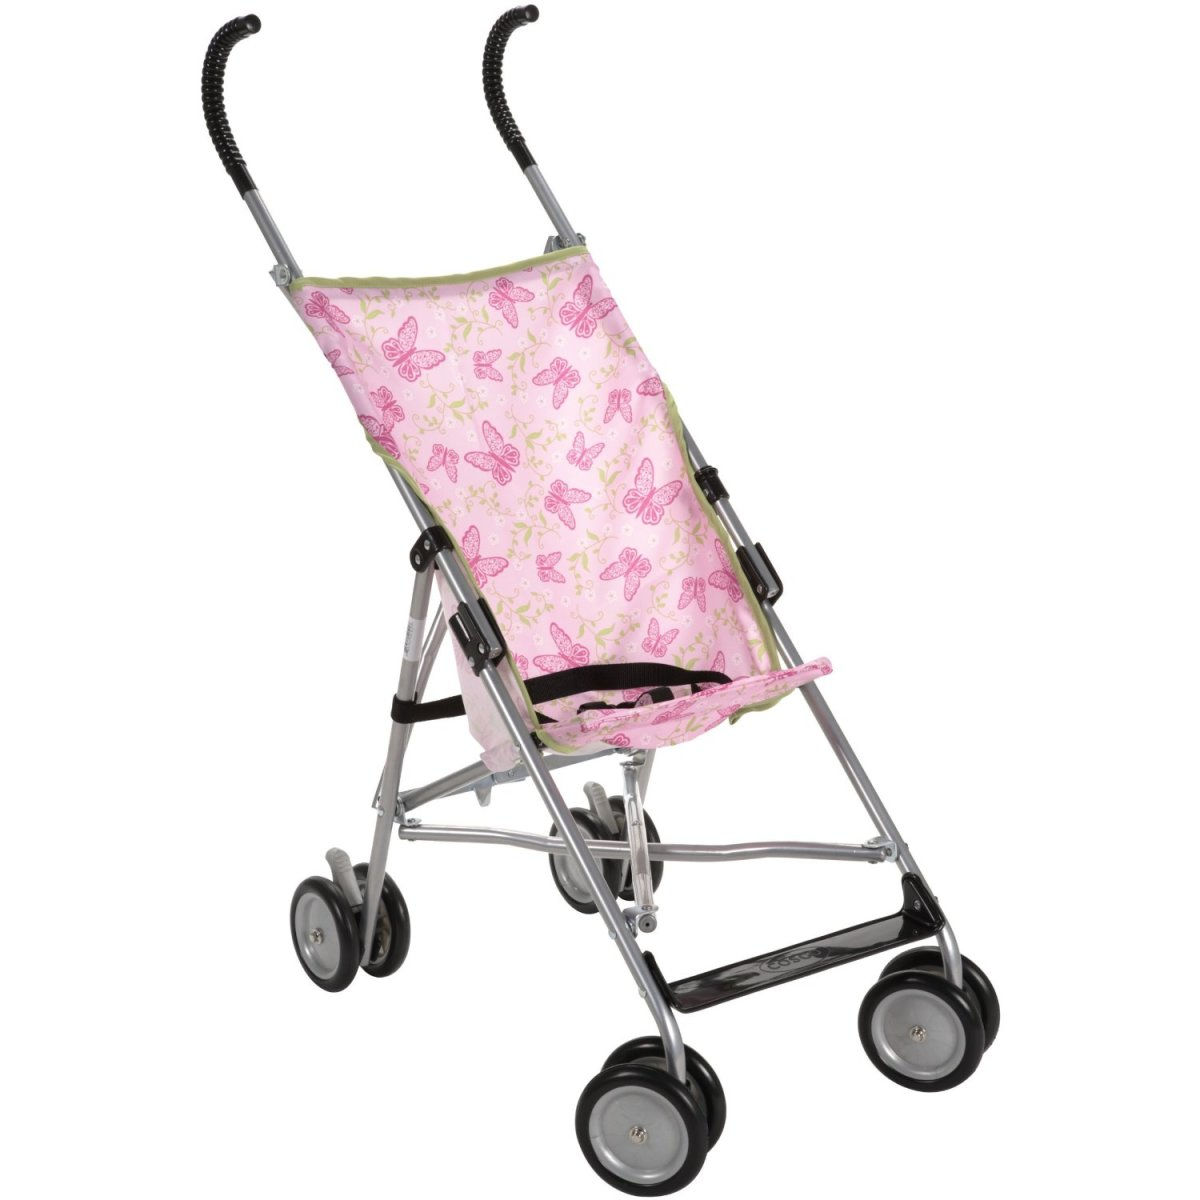 Cosco Umbrella Stroller Butterfly Dreams